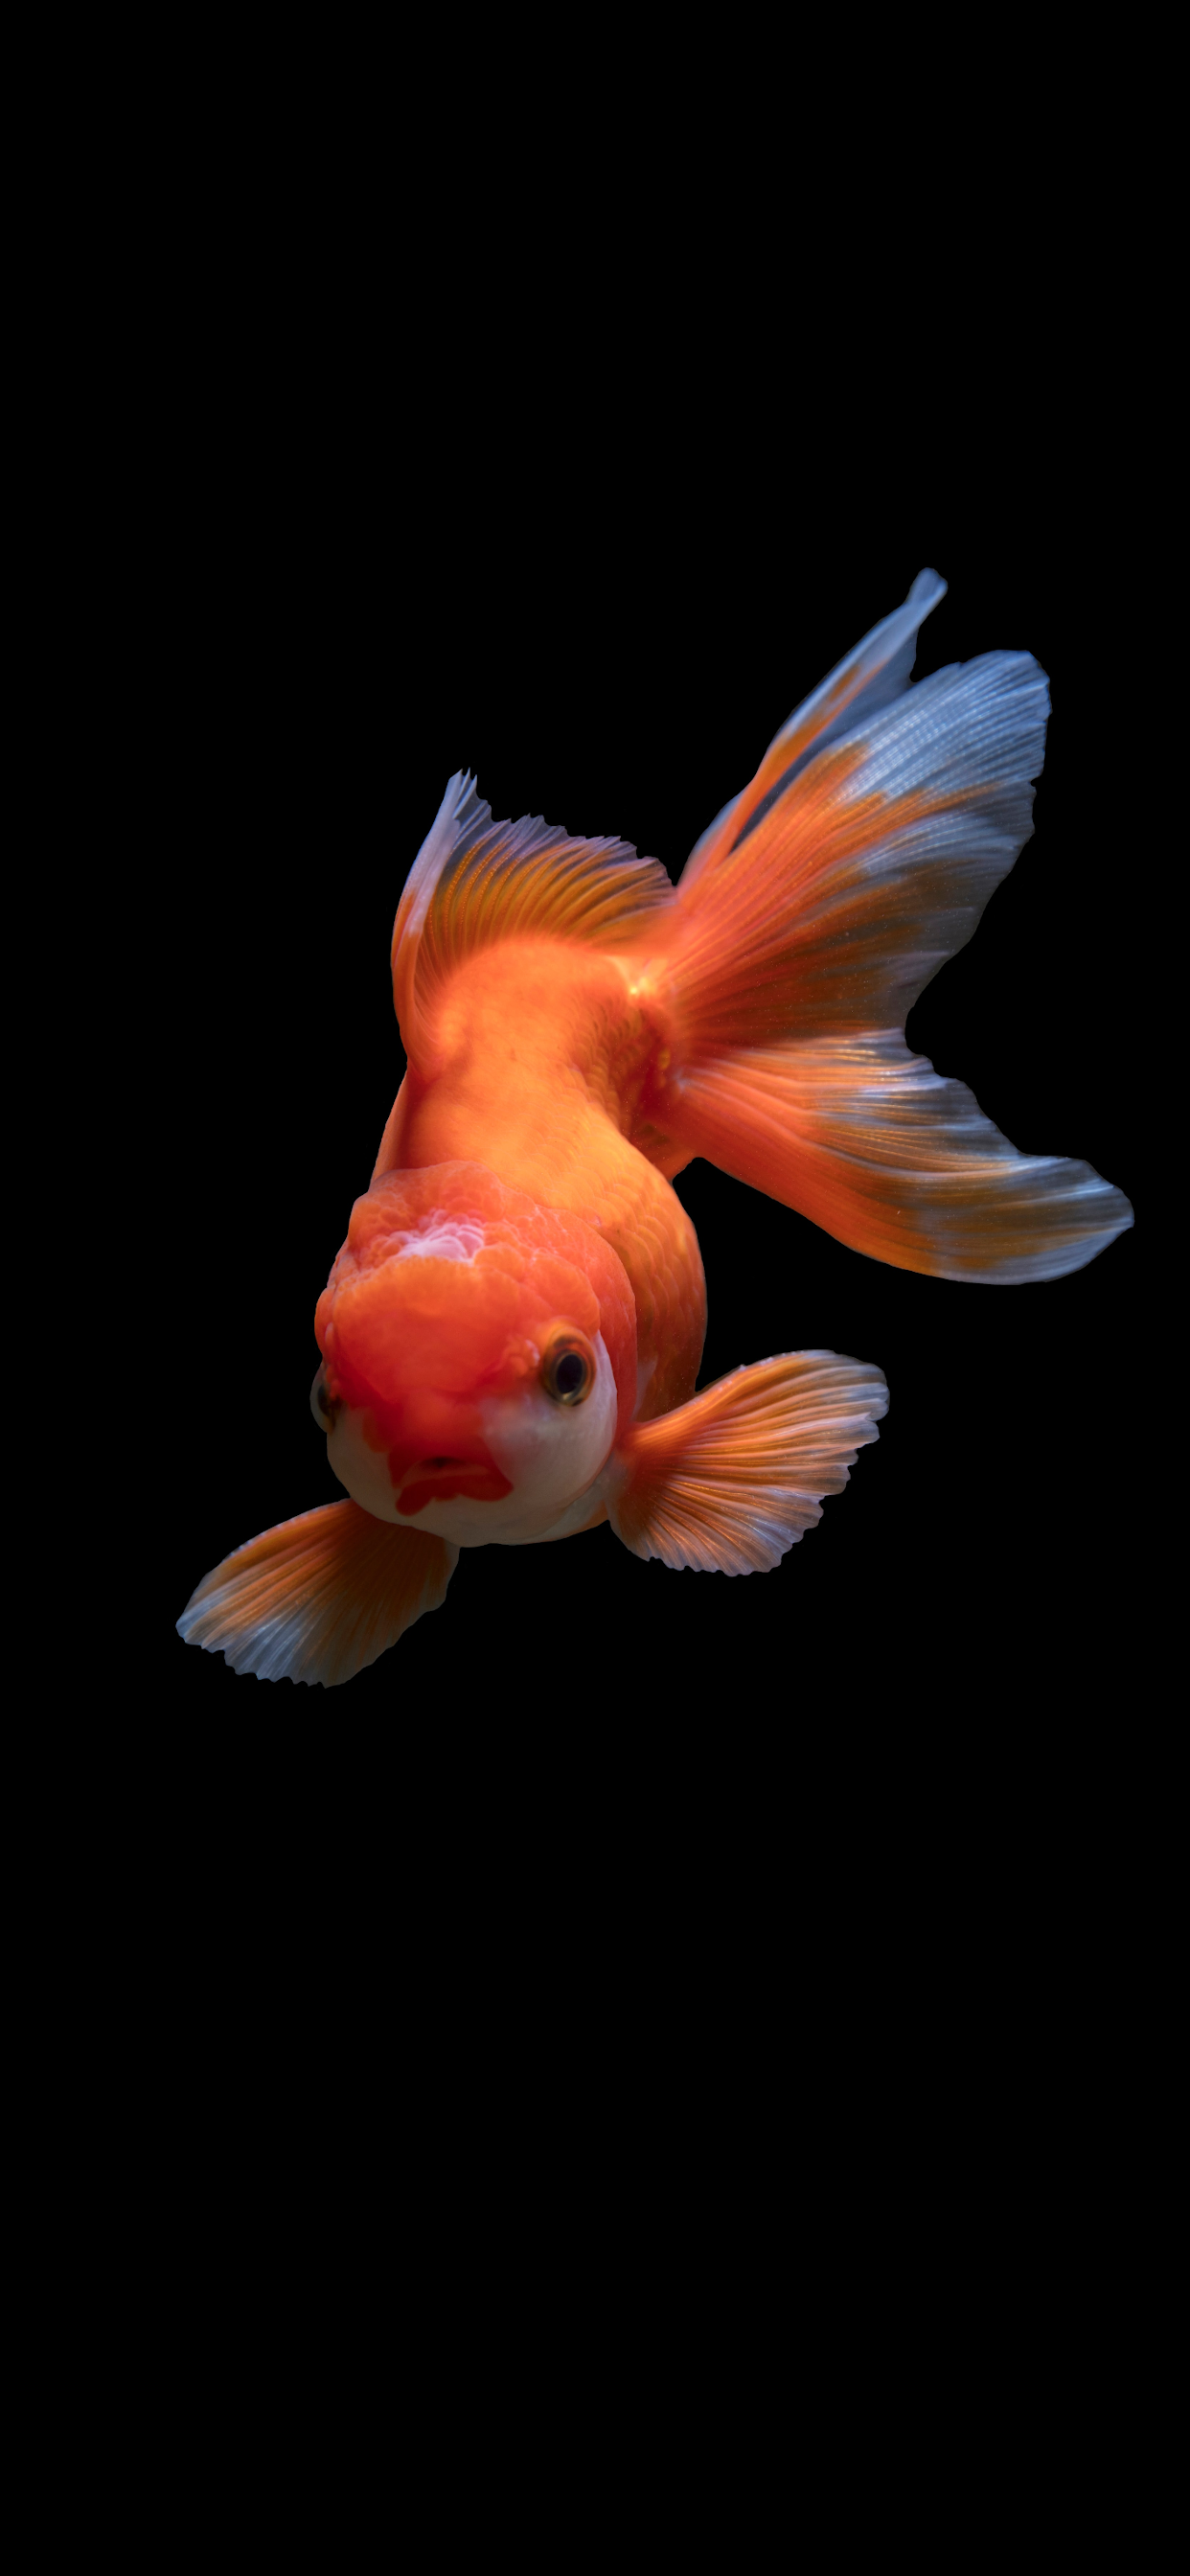 iPhone wallpapers fish orange Fish